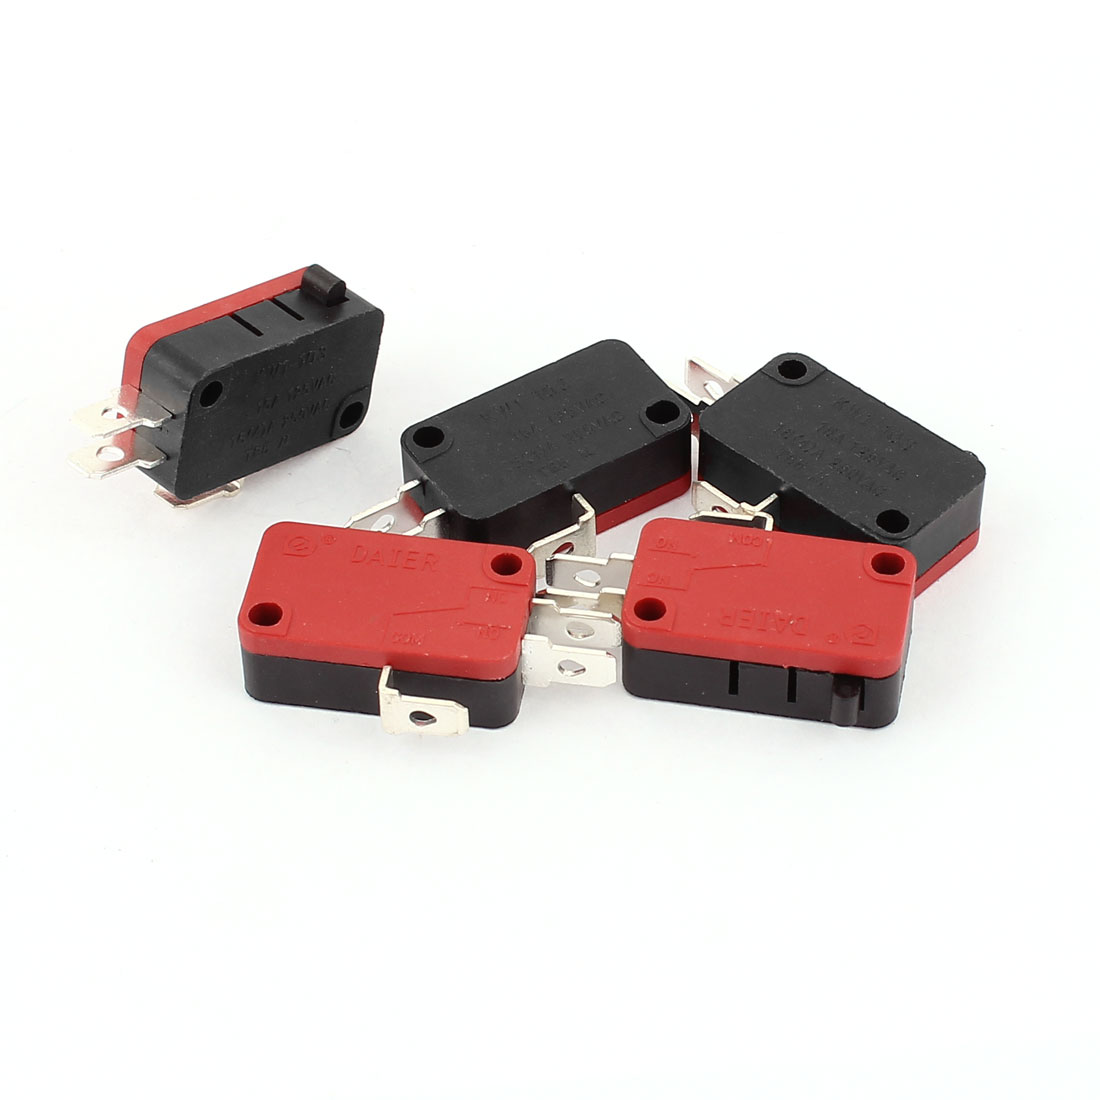 SPDT Momentary Button Snap Action Subminiature Mini Micro Limit Switch 5pcs